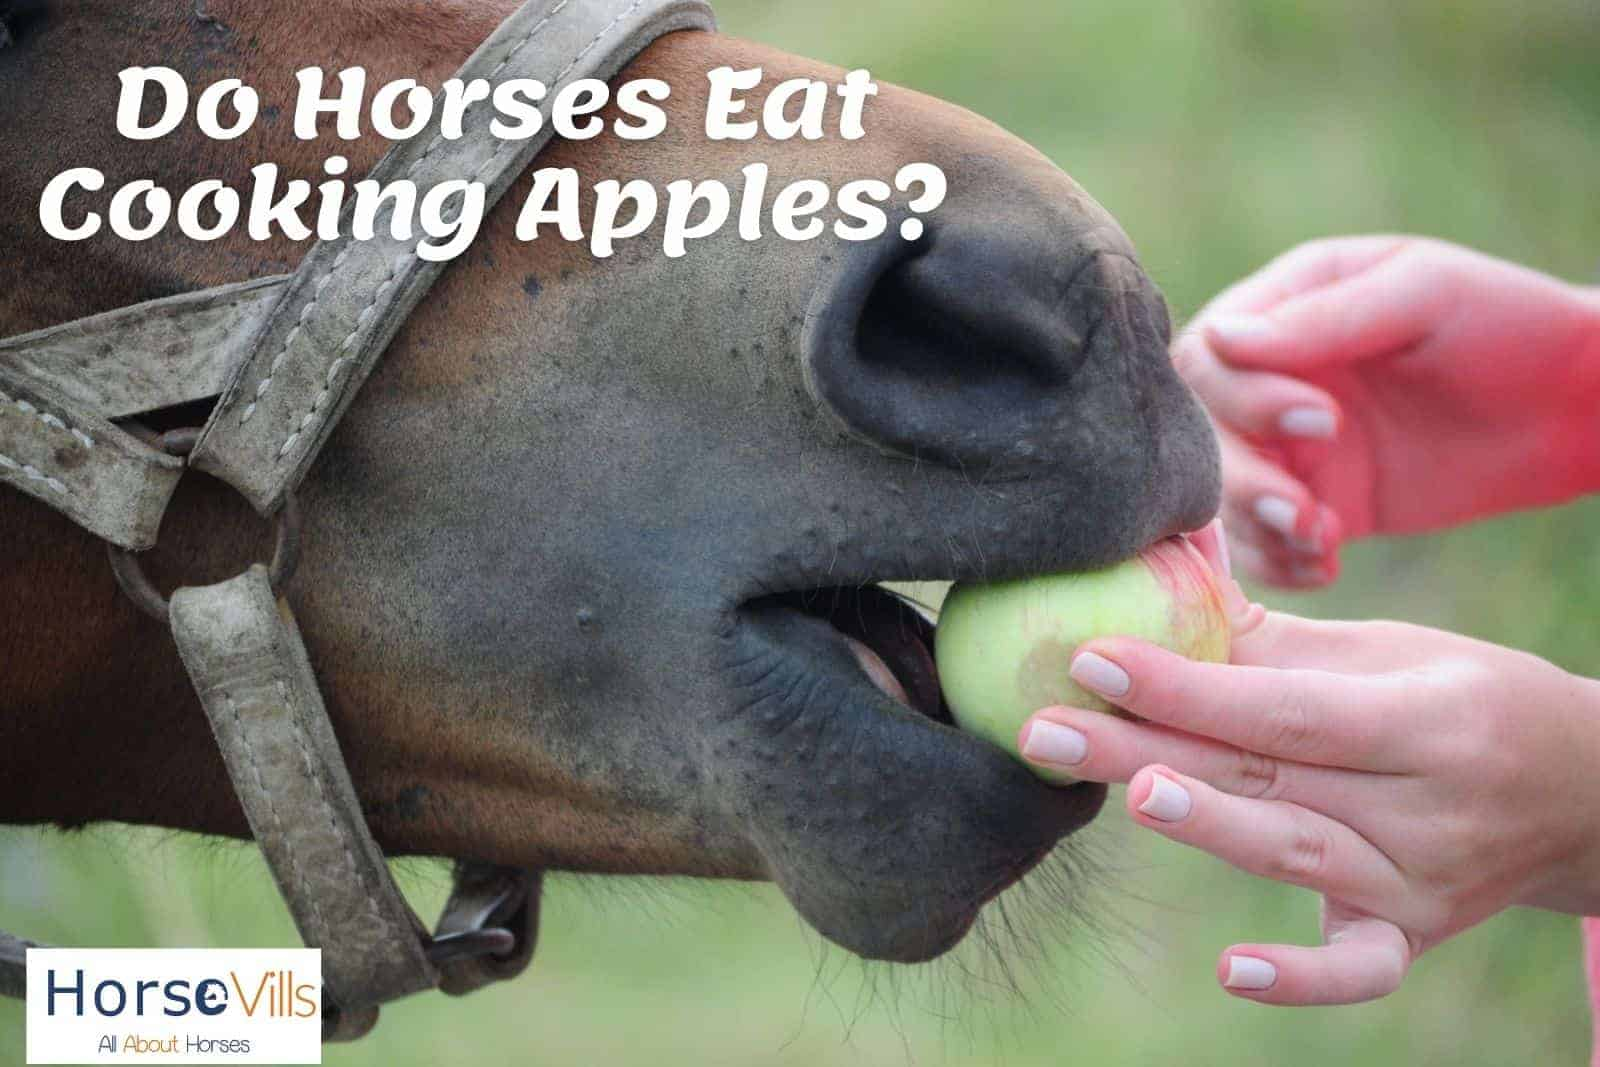 a hand feeding apple to a horse: do horses eat cooking apples?